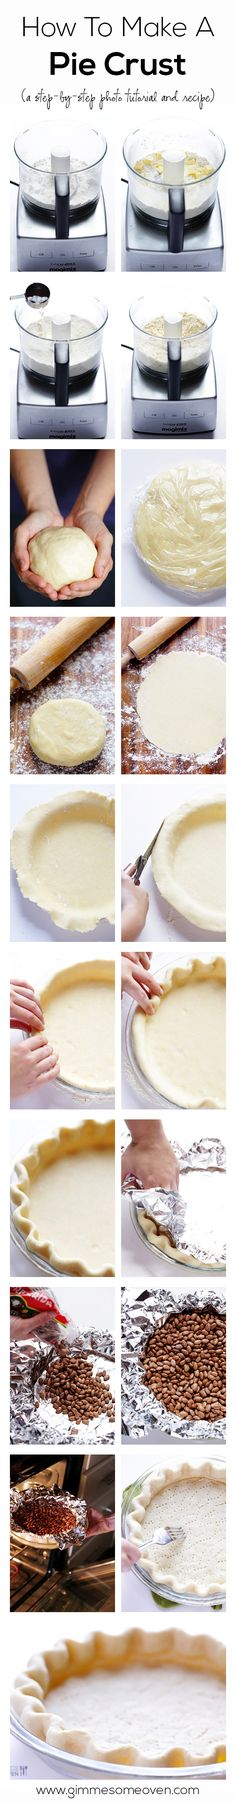 Beautiful pie crusts are easier to make than you may think! Follow this easy step-by-step photo tutorial to make one of your own.